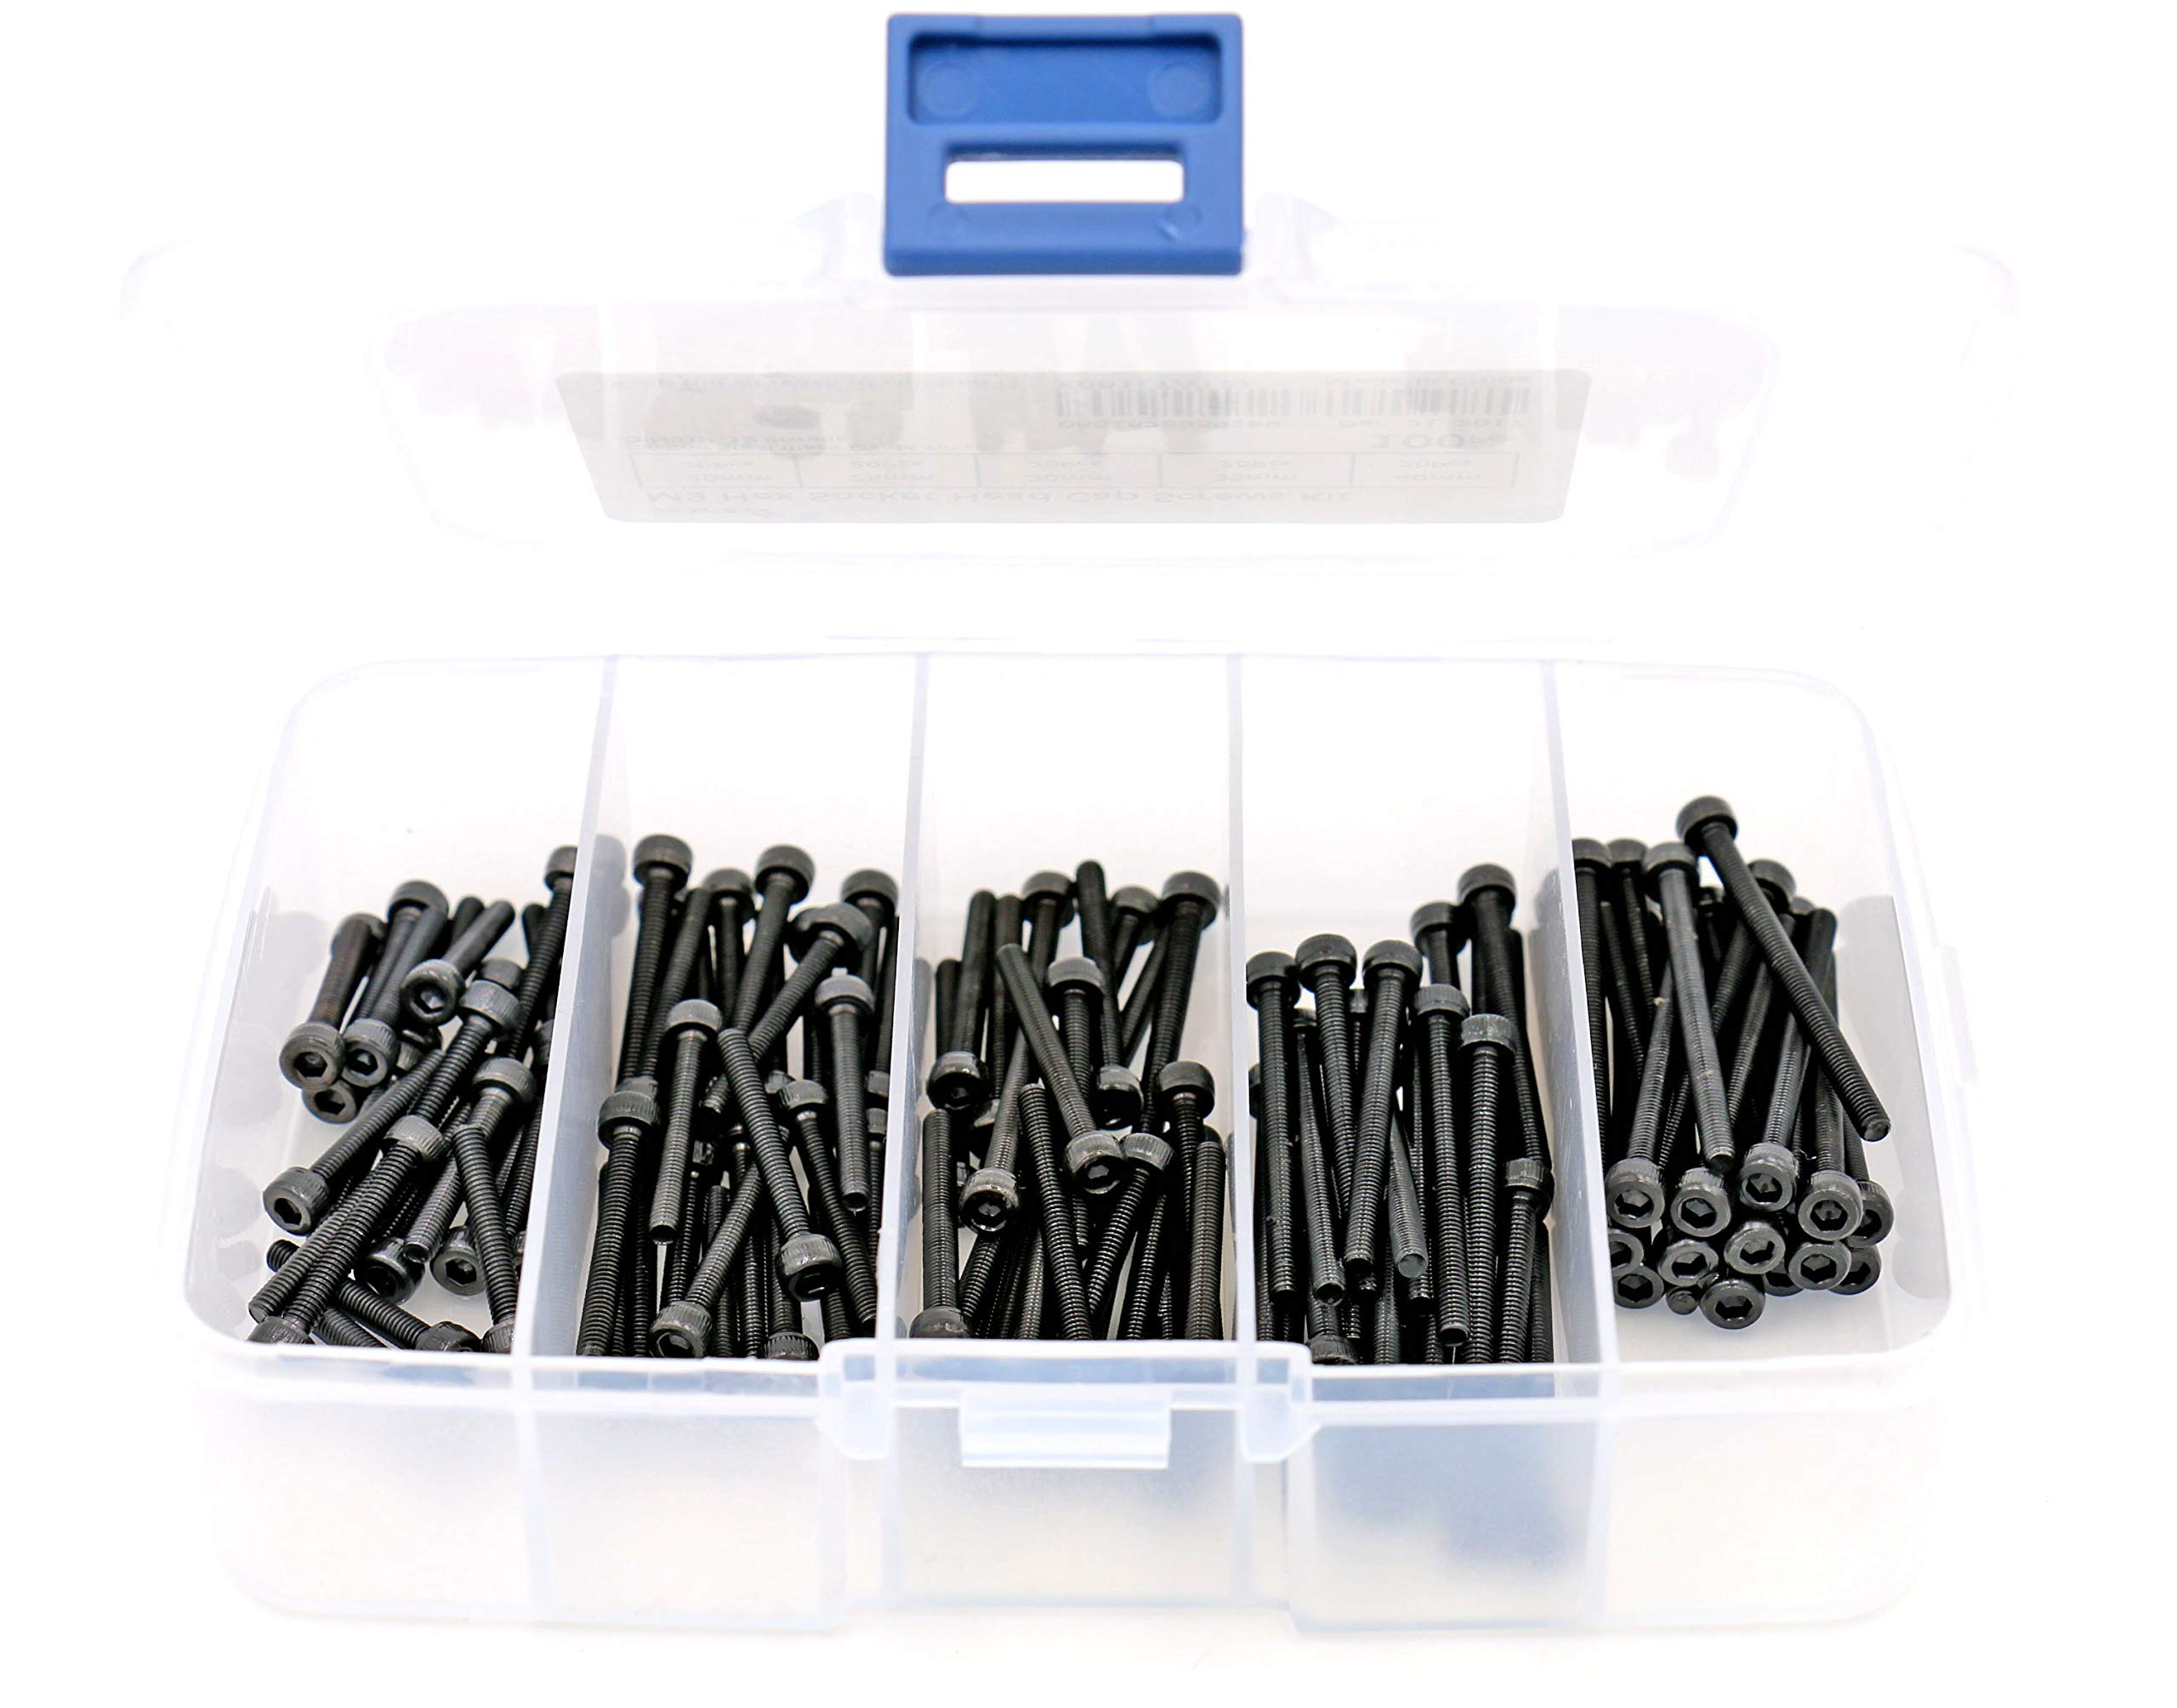 iExcell 100 Pcs 5 Sizes Assortment M3 x 20mm/25mm/30mm/35mm/40mm Hex Socket Head Cap Screws Kit, Alloy Steel Black Oxide Finish, 12.9 Grade, Fully Threaded by iexcell